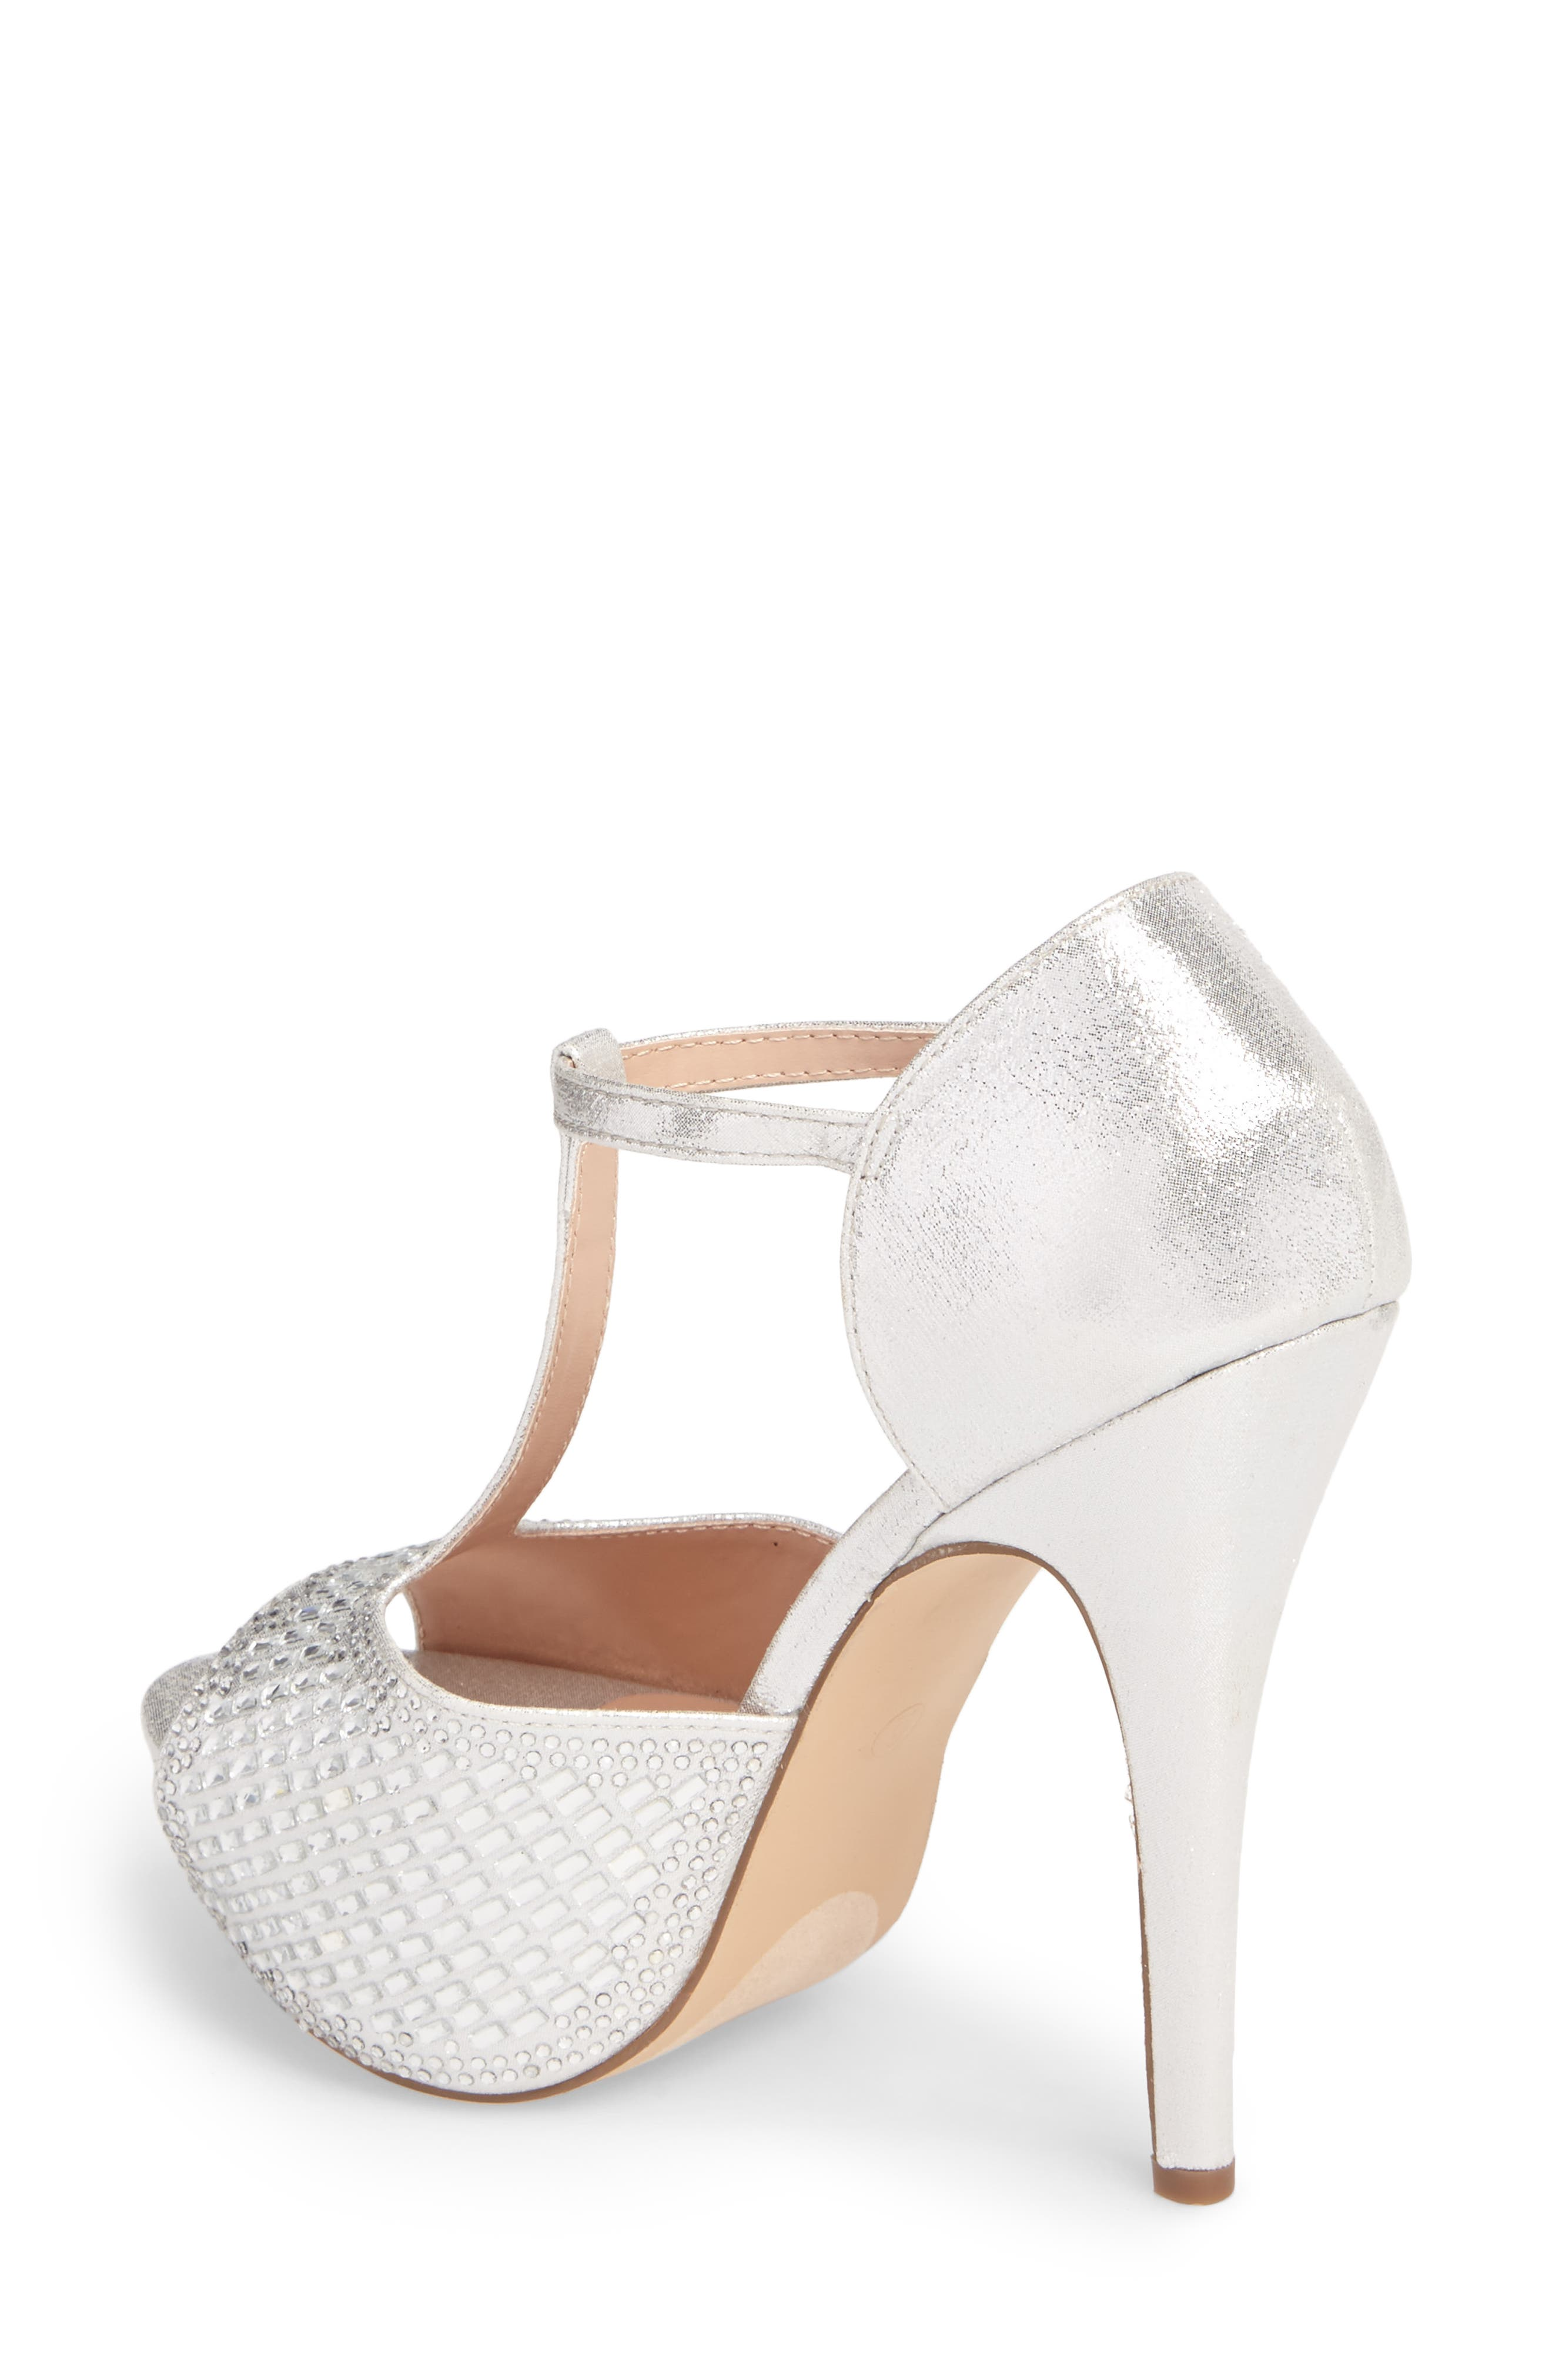 Vivian 4 Crystal Embellished Sandal,                             Alternate thumbnail 5, color,